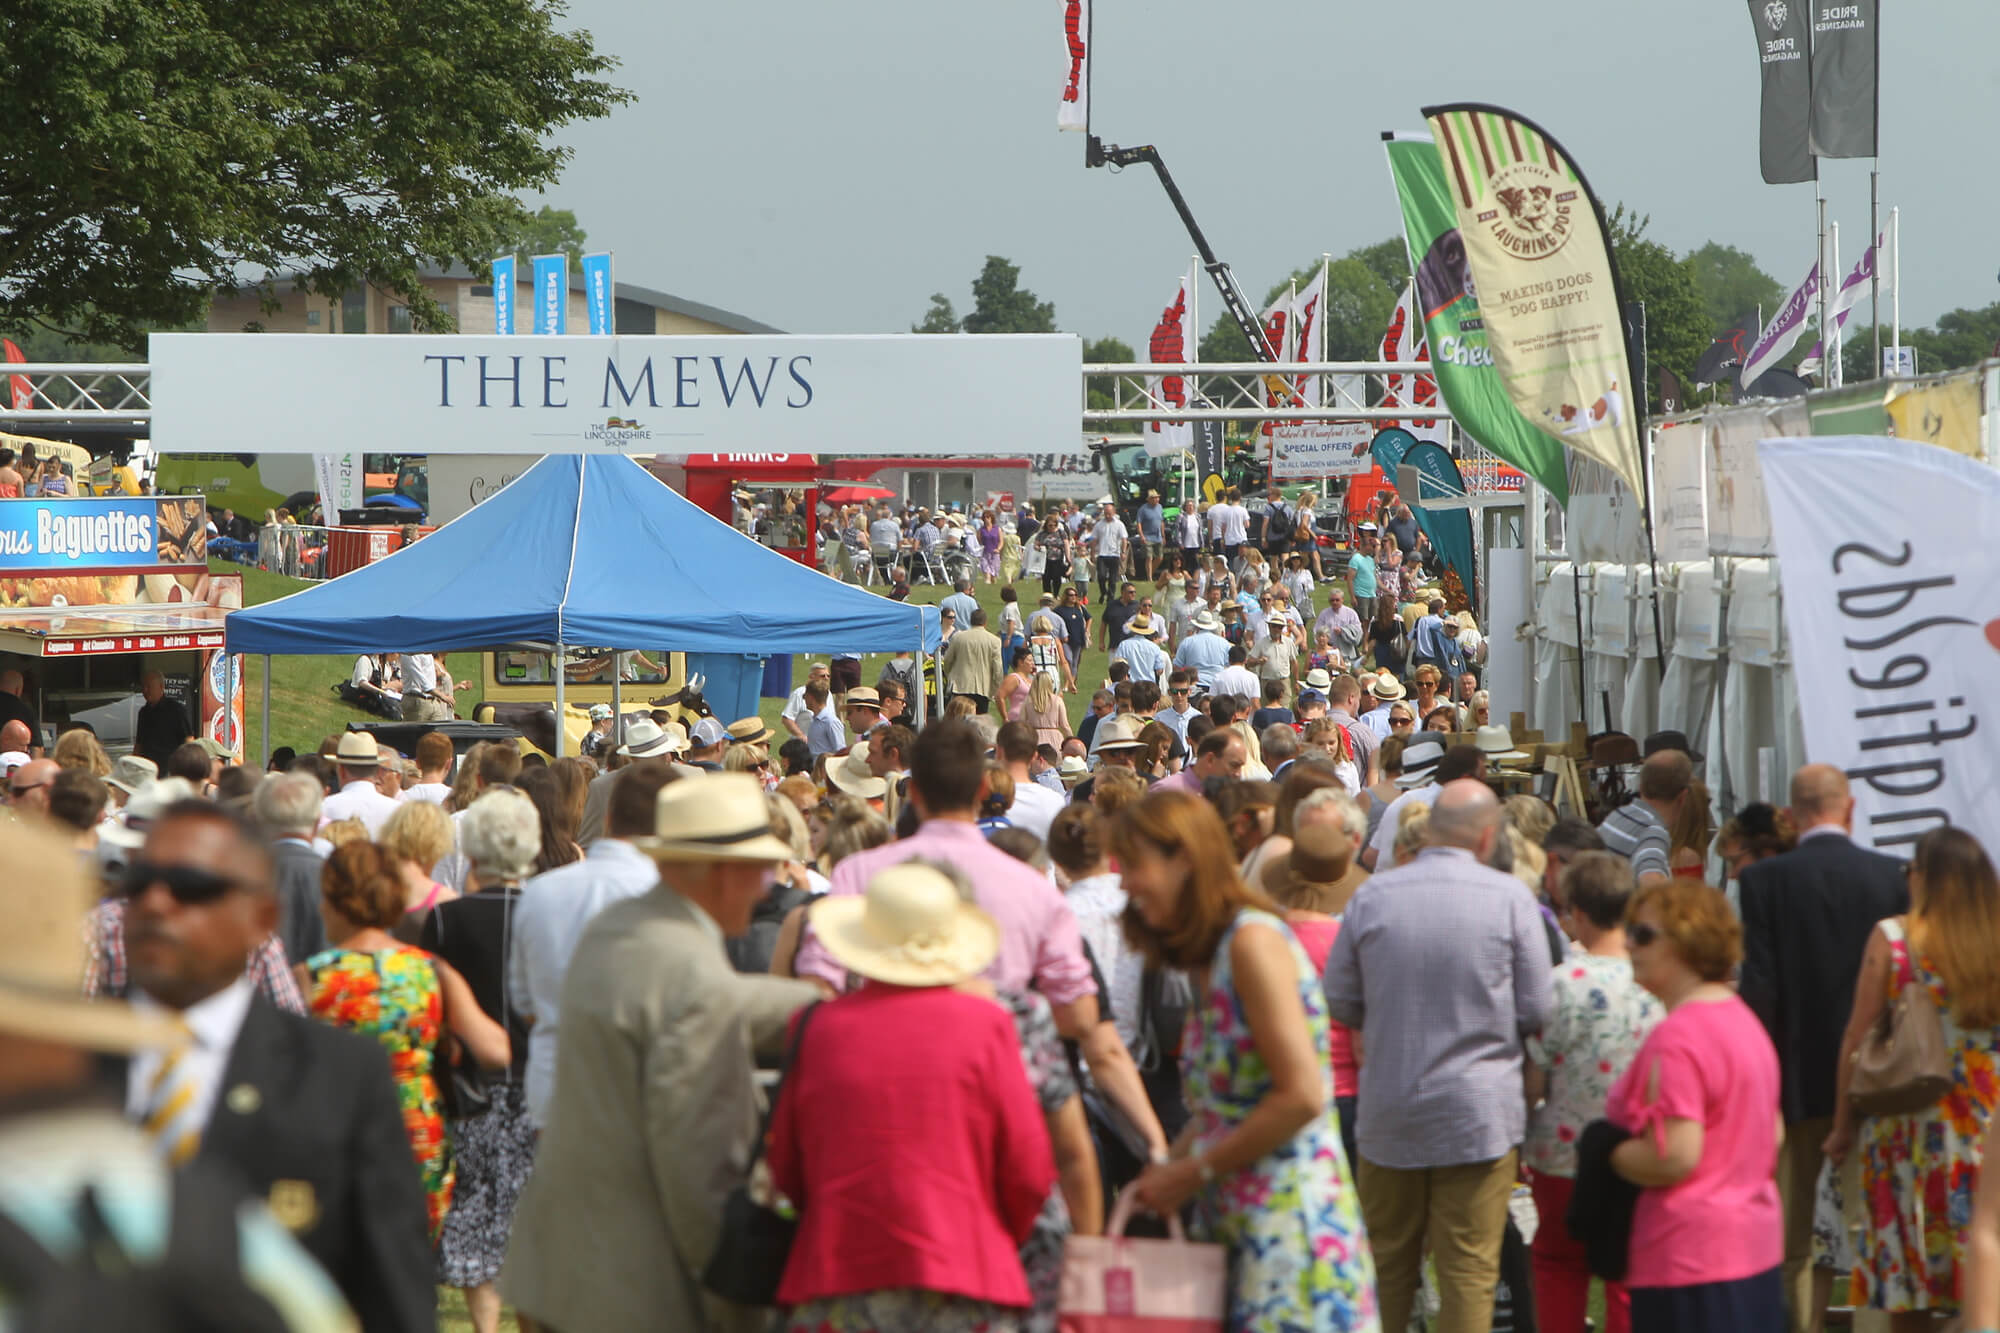 lincolnshire-county-show-ground-hardwick-windows-exhibiting-showground-2018-people-field-shops-pop-up.jpg